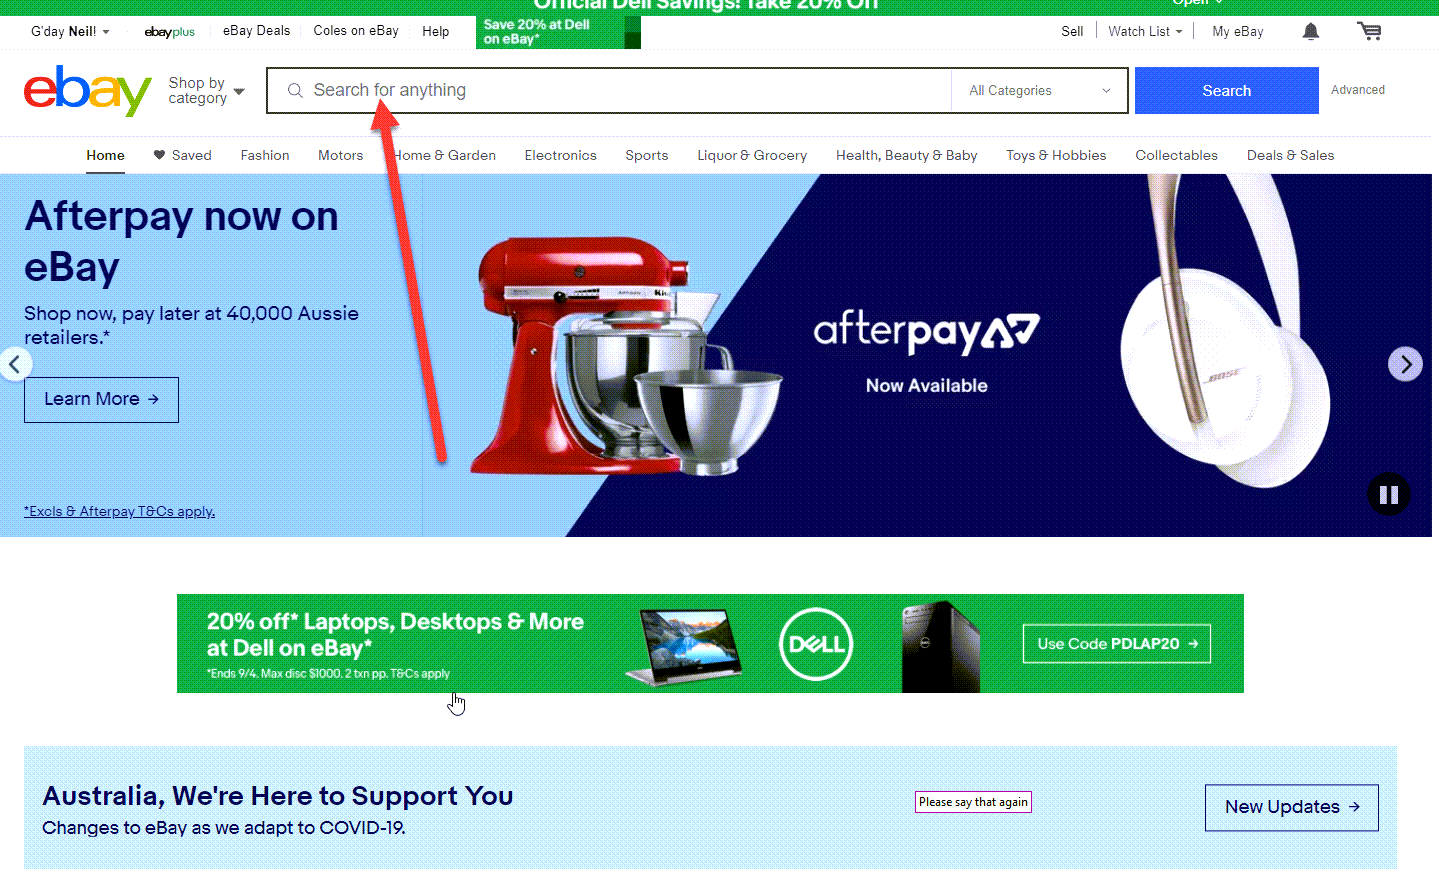 How to open an eBay account